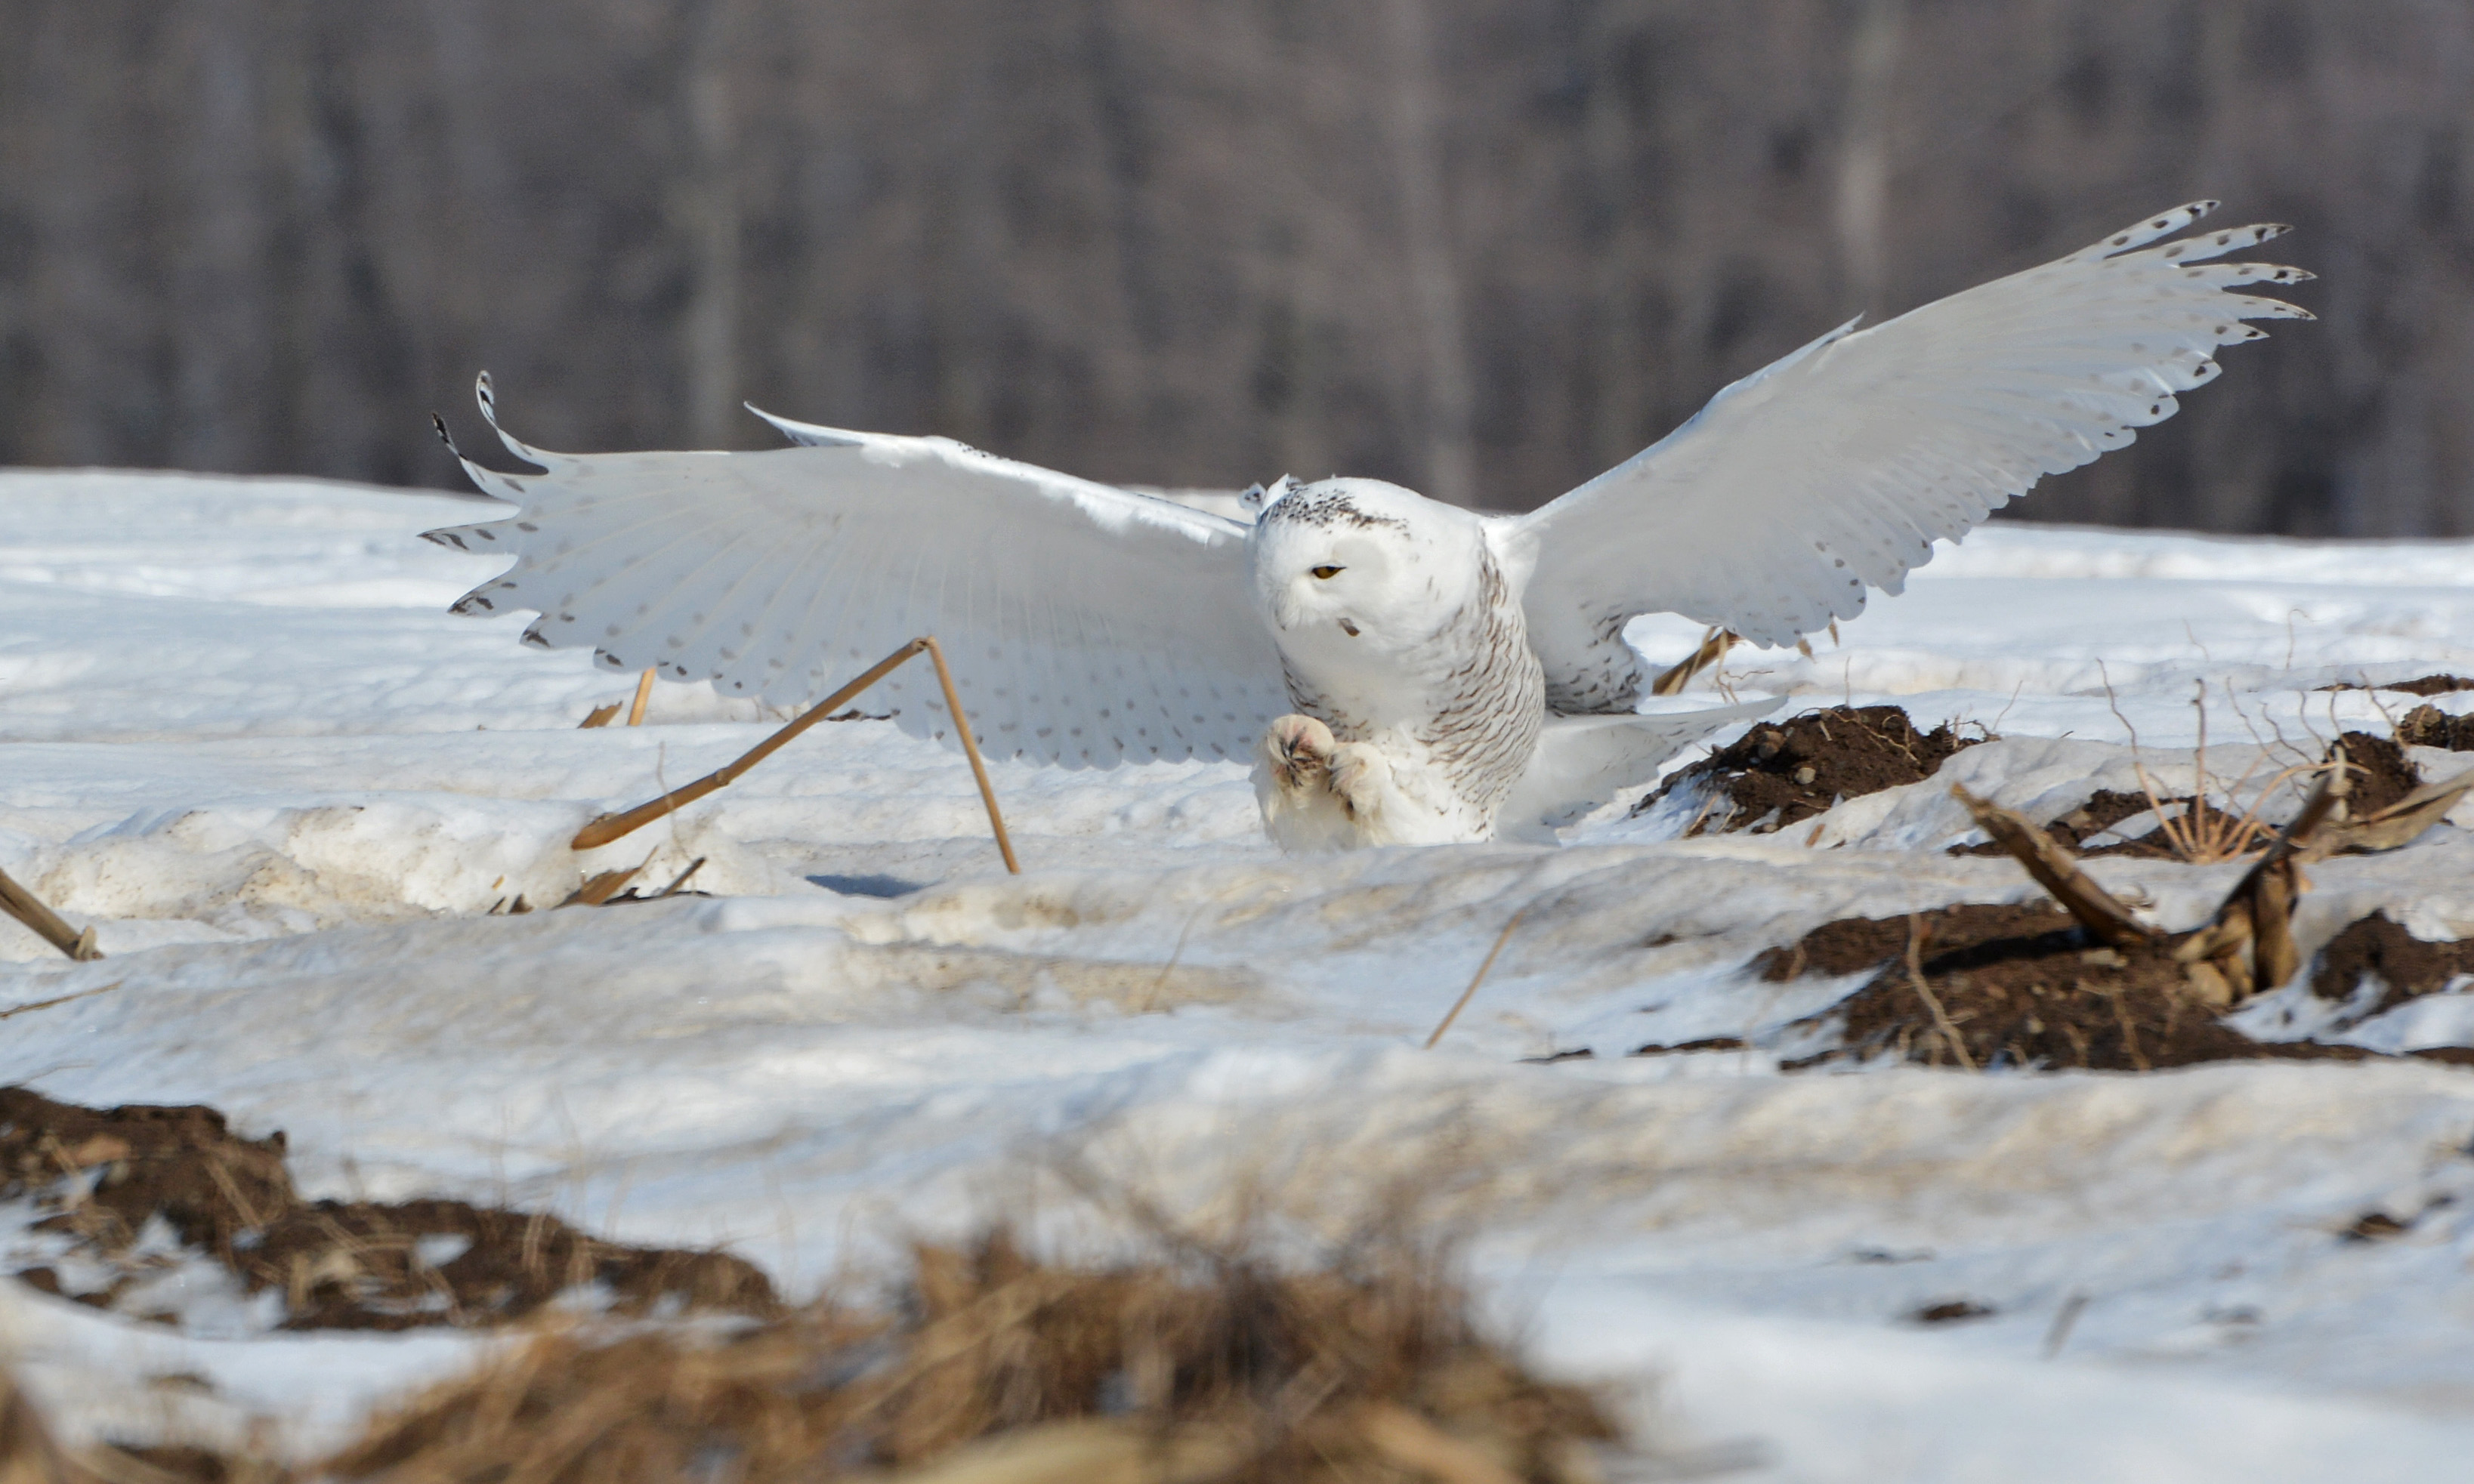 Snowy Owl hunting behavior | Nick's Nature Pics